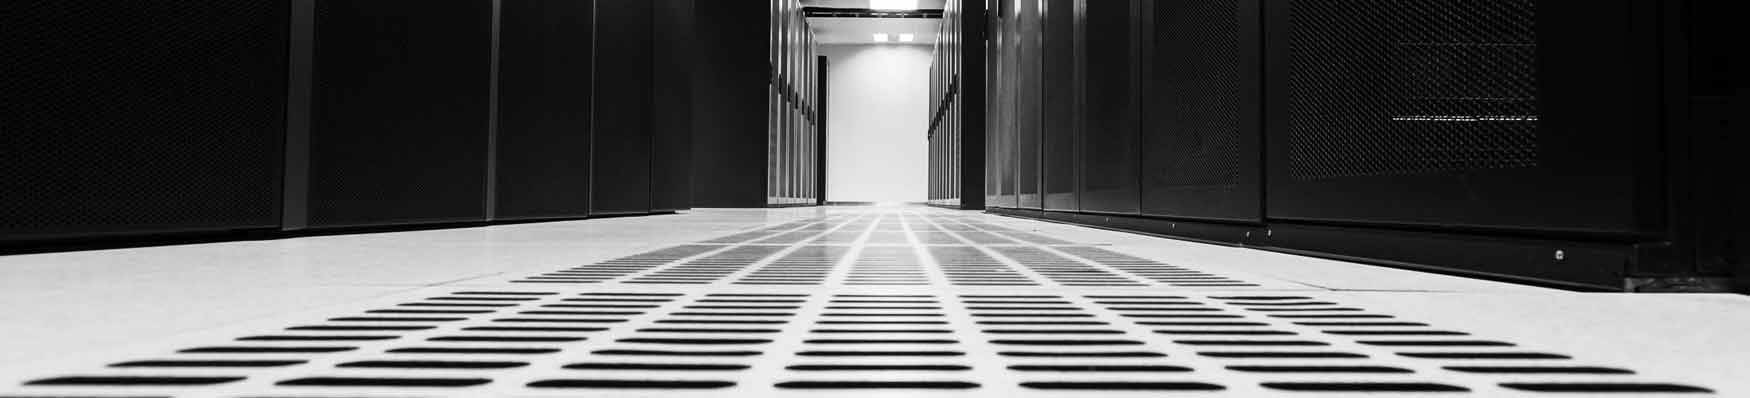 datacenter flooring